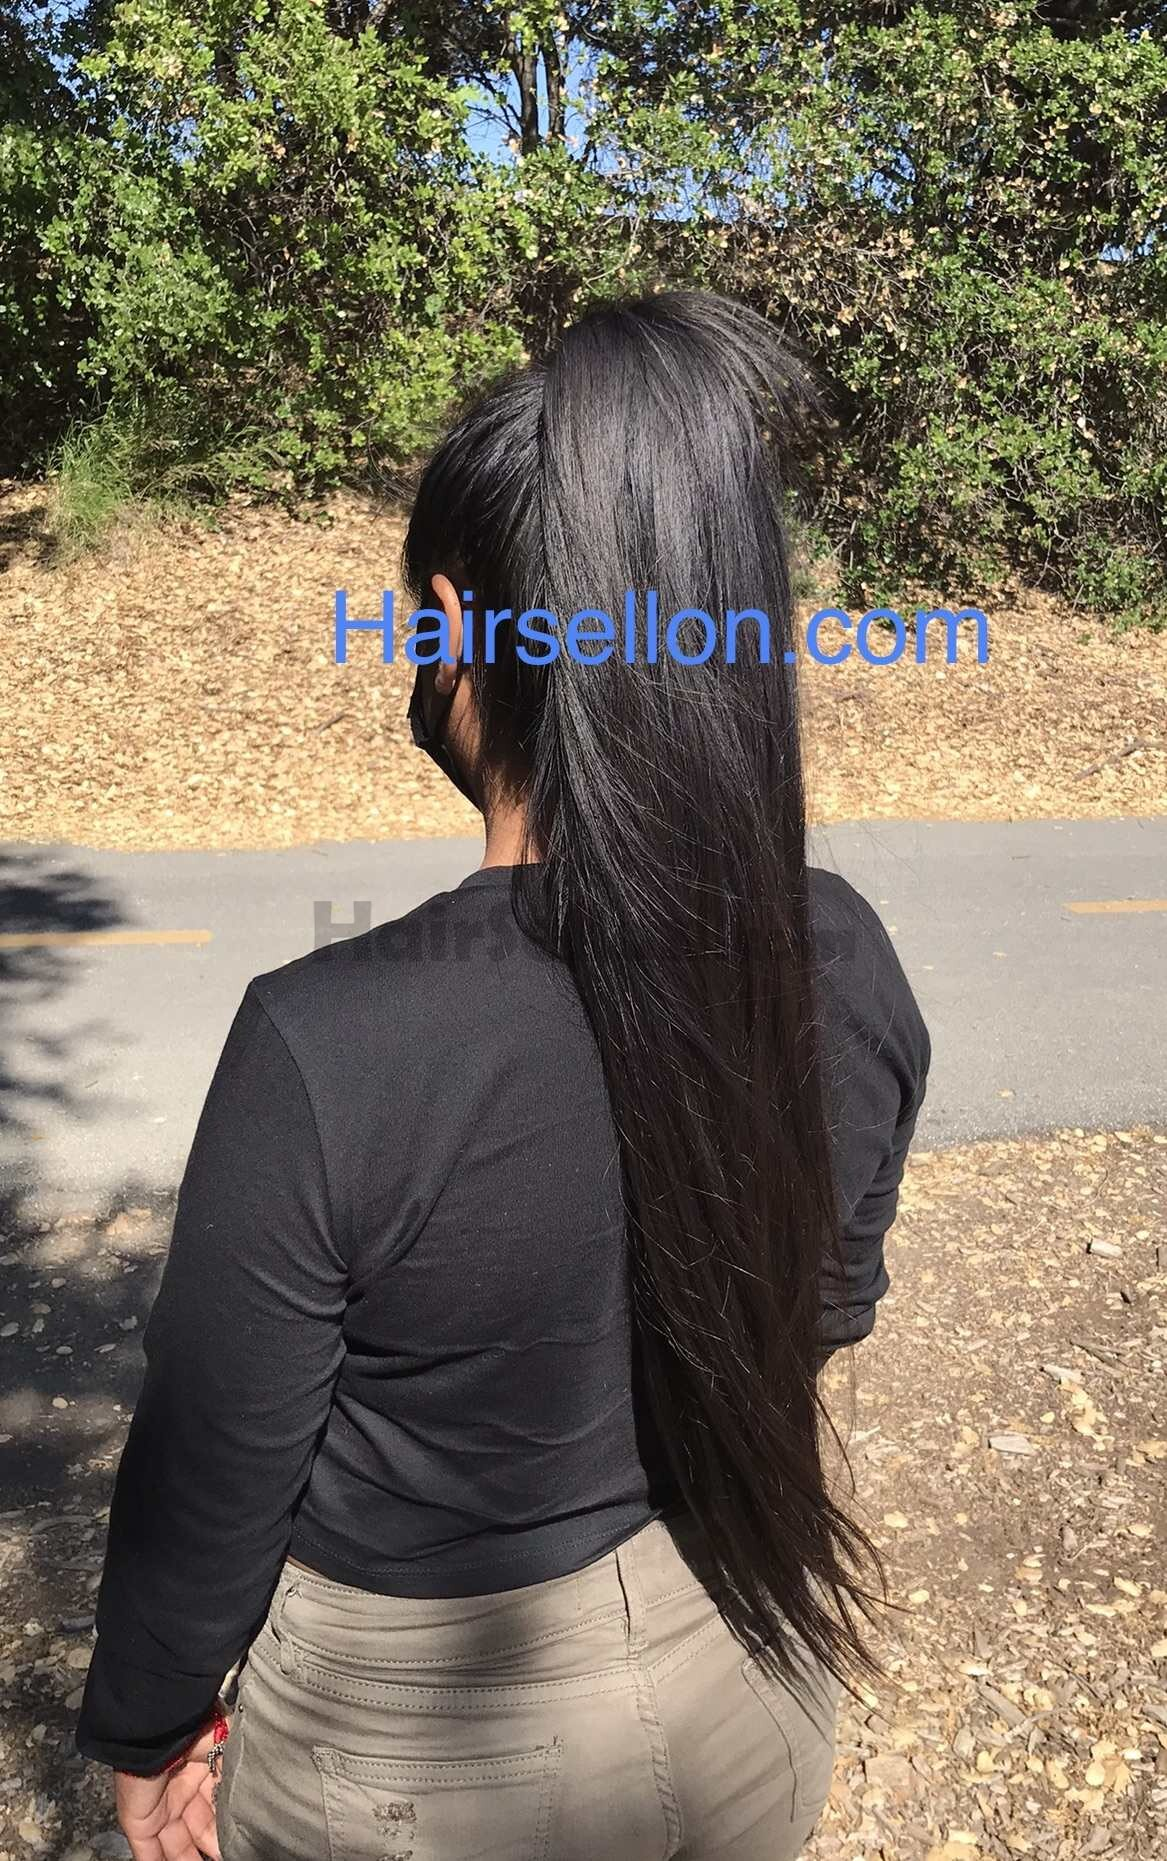 Hairsellon1